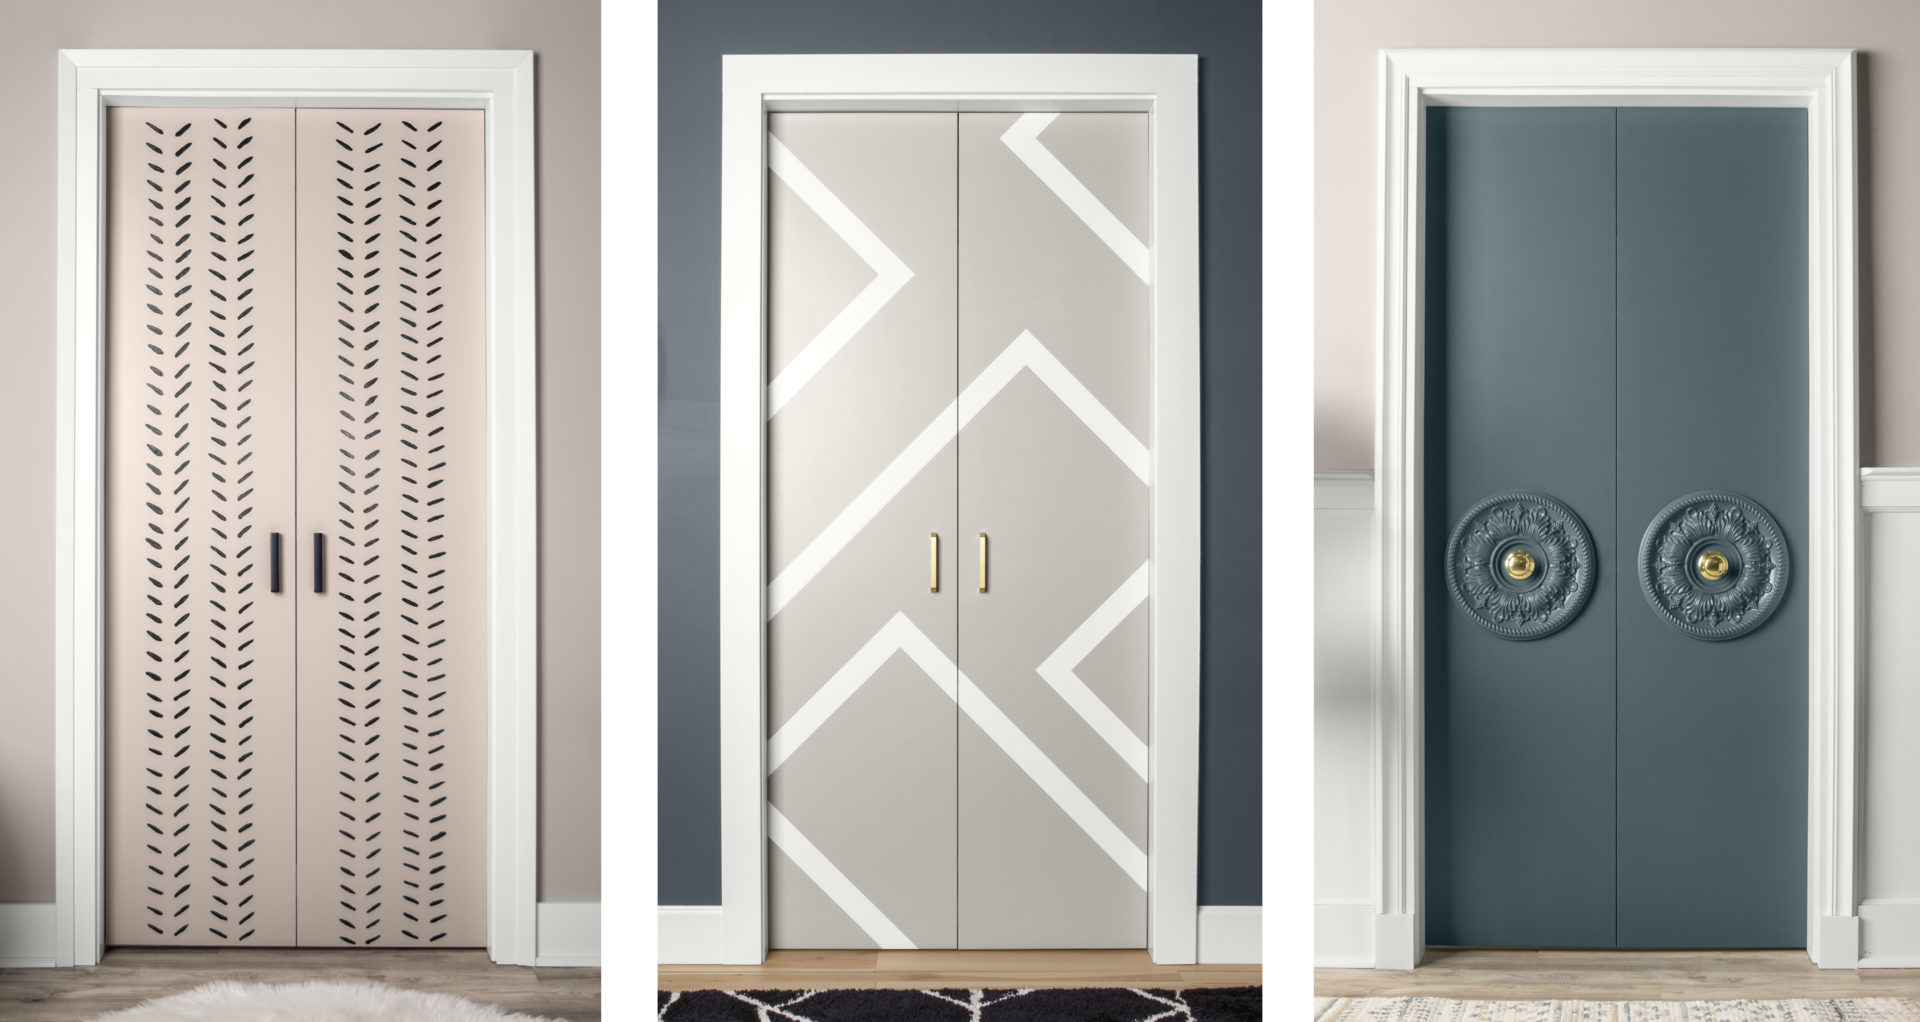 An image showing three doors, side by side, each door has a different designs; dashes, lines, decorative knobs.